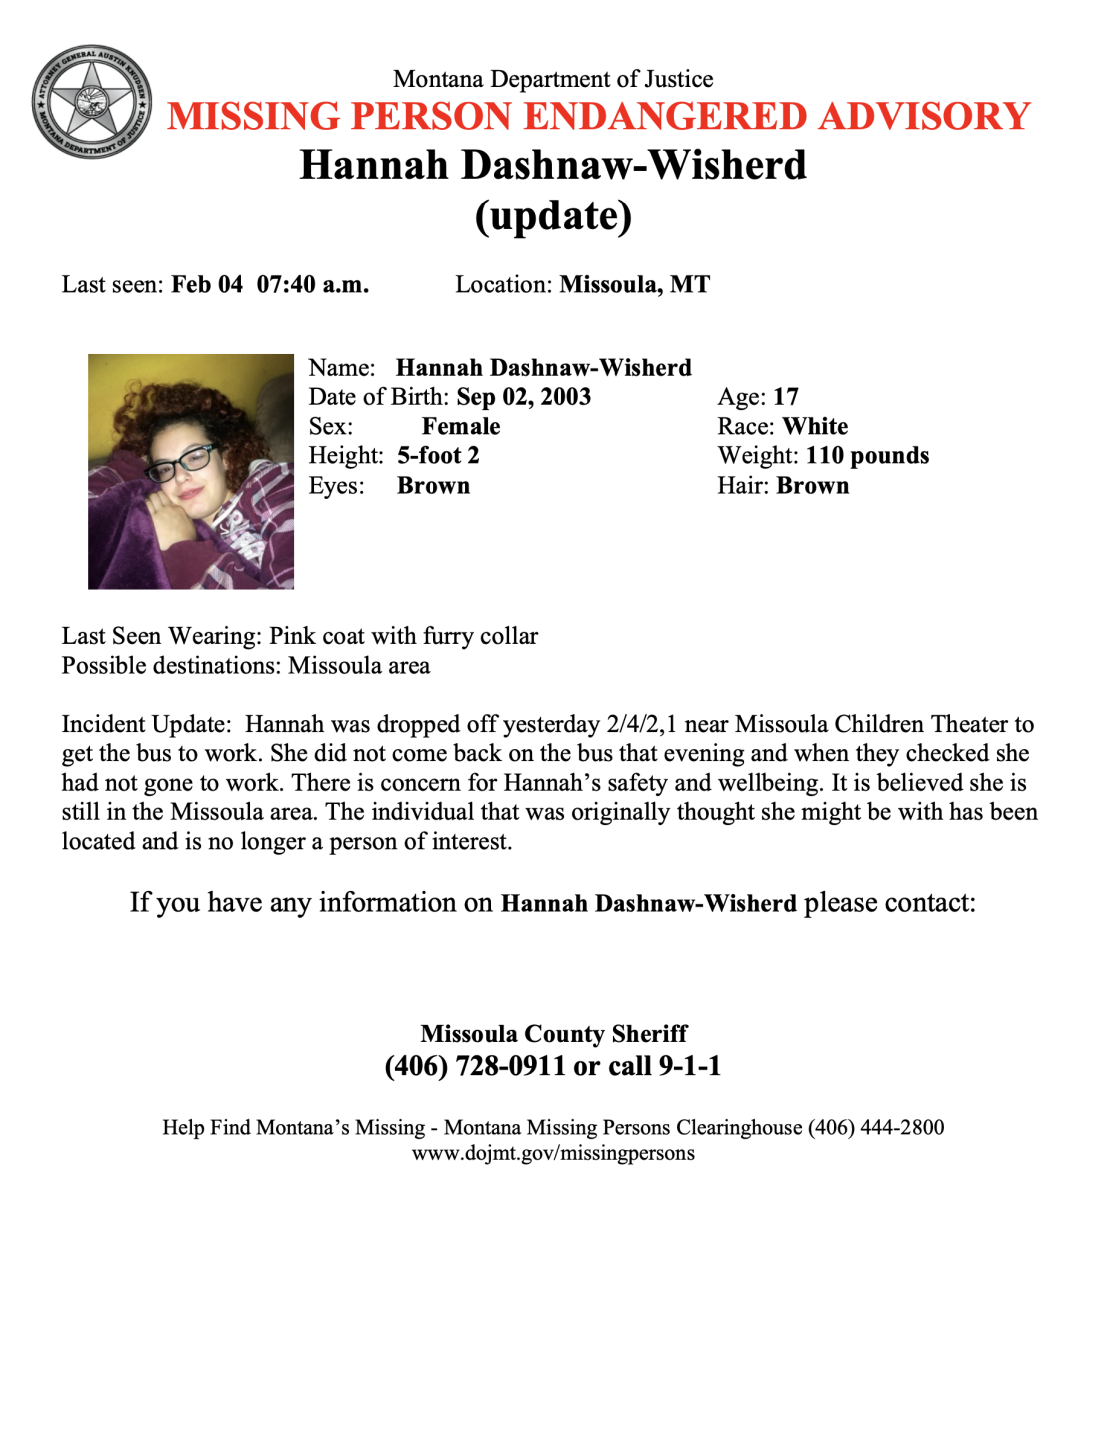 Missing and Endangered Person Advisory issued for 17 year old Hannah Dashnaw-Wisherd